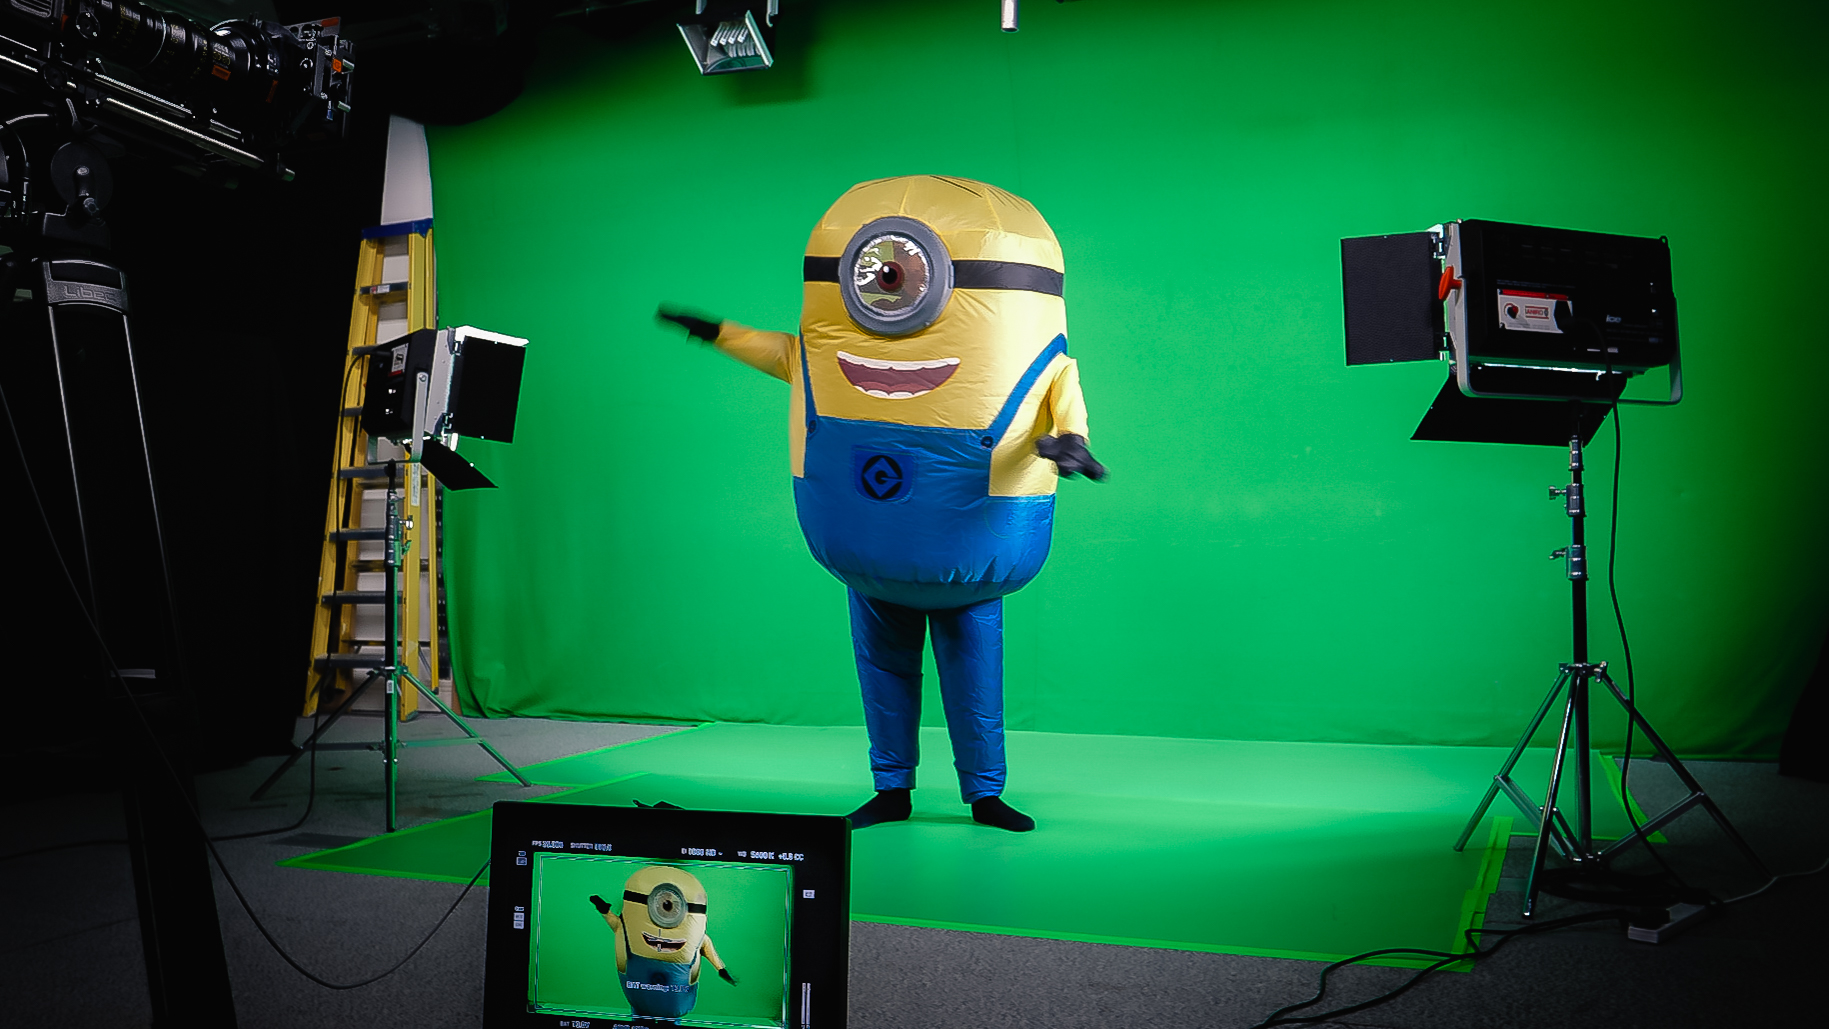 Green Screen Studio at IQ Studios with Stuart Minion, lighting and monitor.